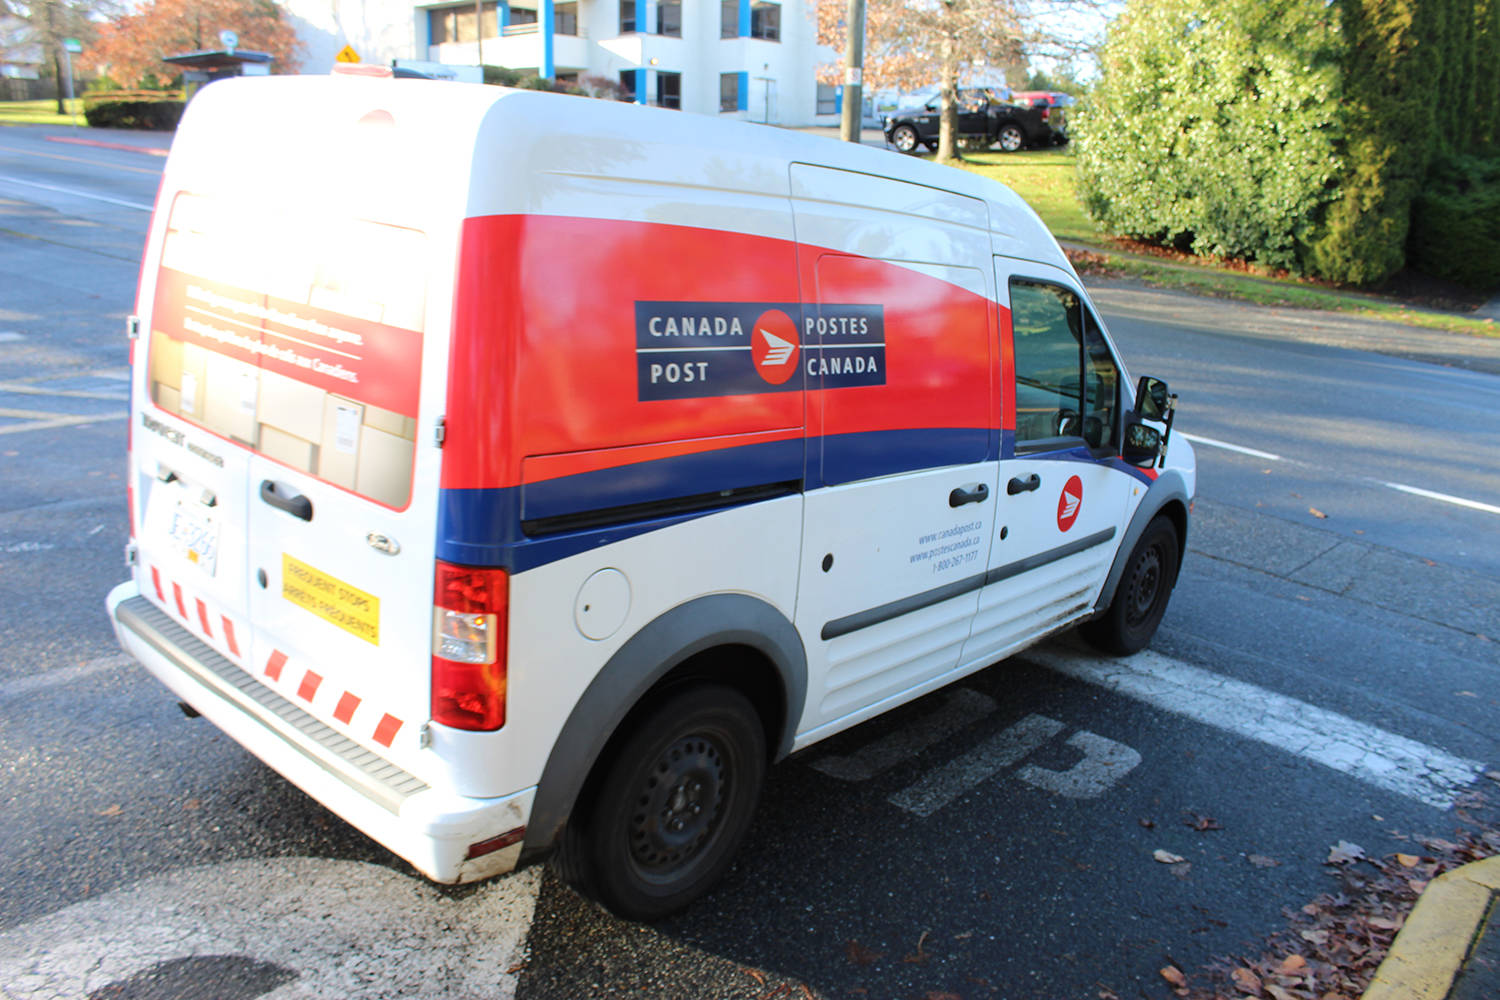 Expect Some Delays But Canada Post Deliveries Mostly Caught Up